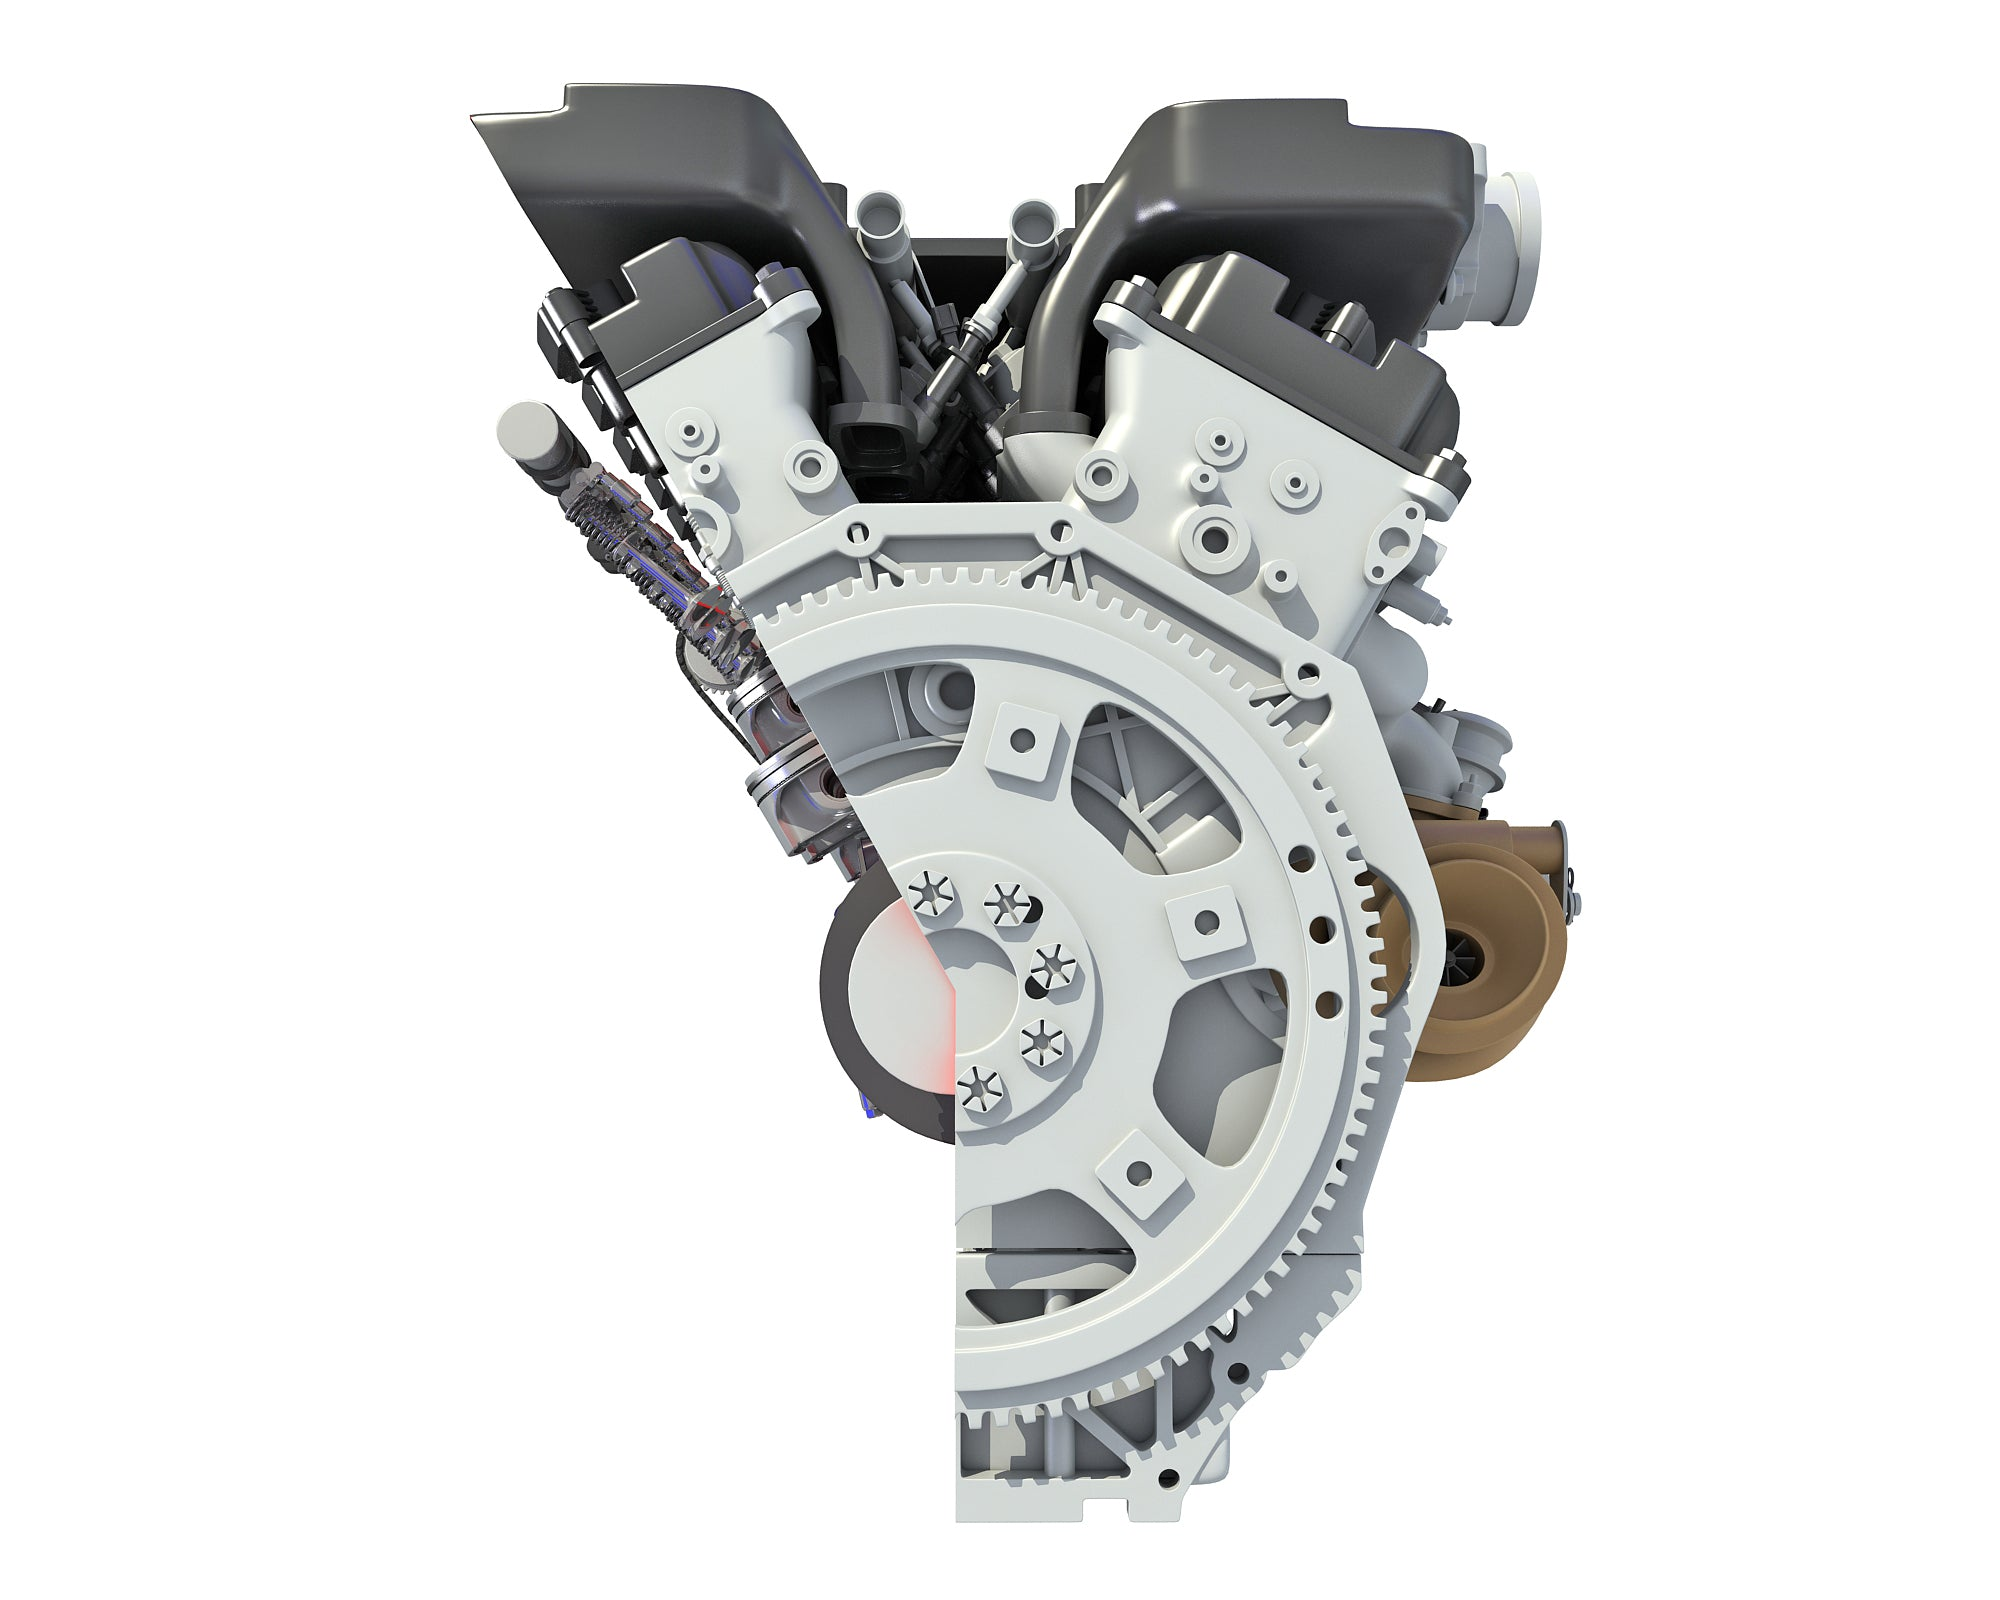 Cutaway Animated V12 Engine 3D Model